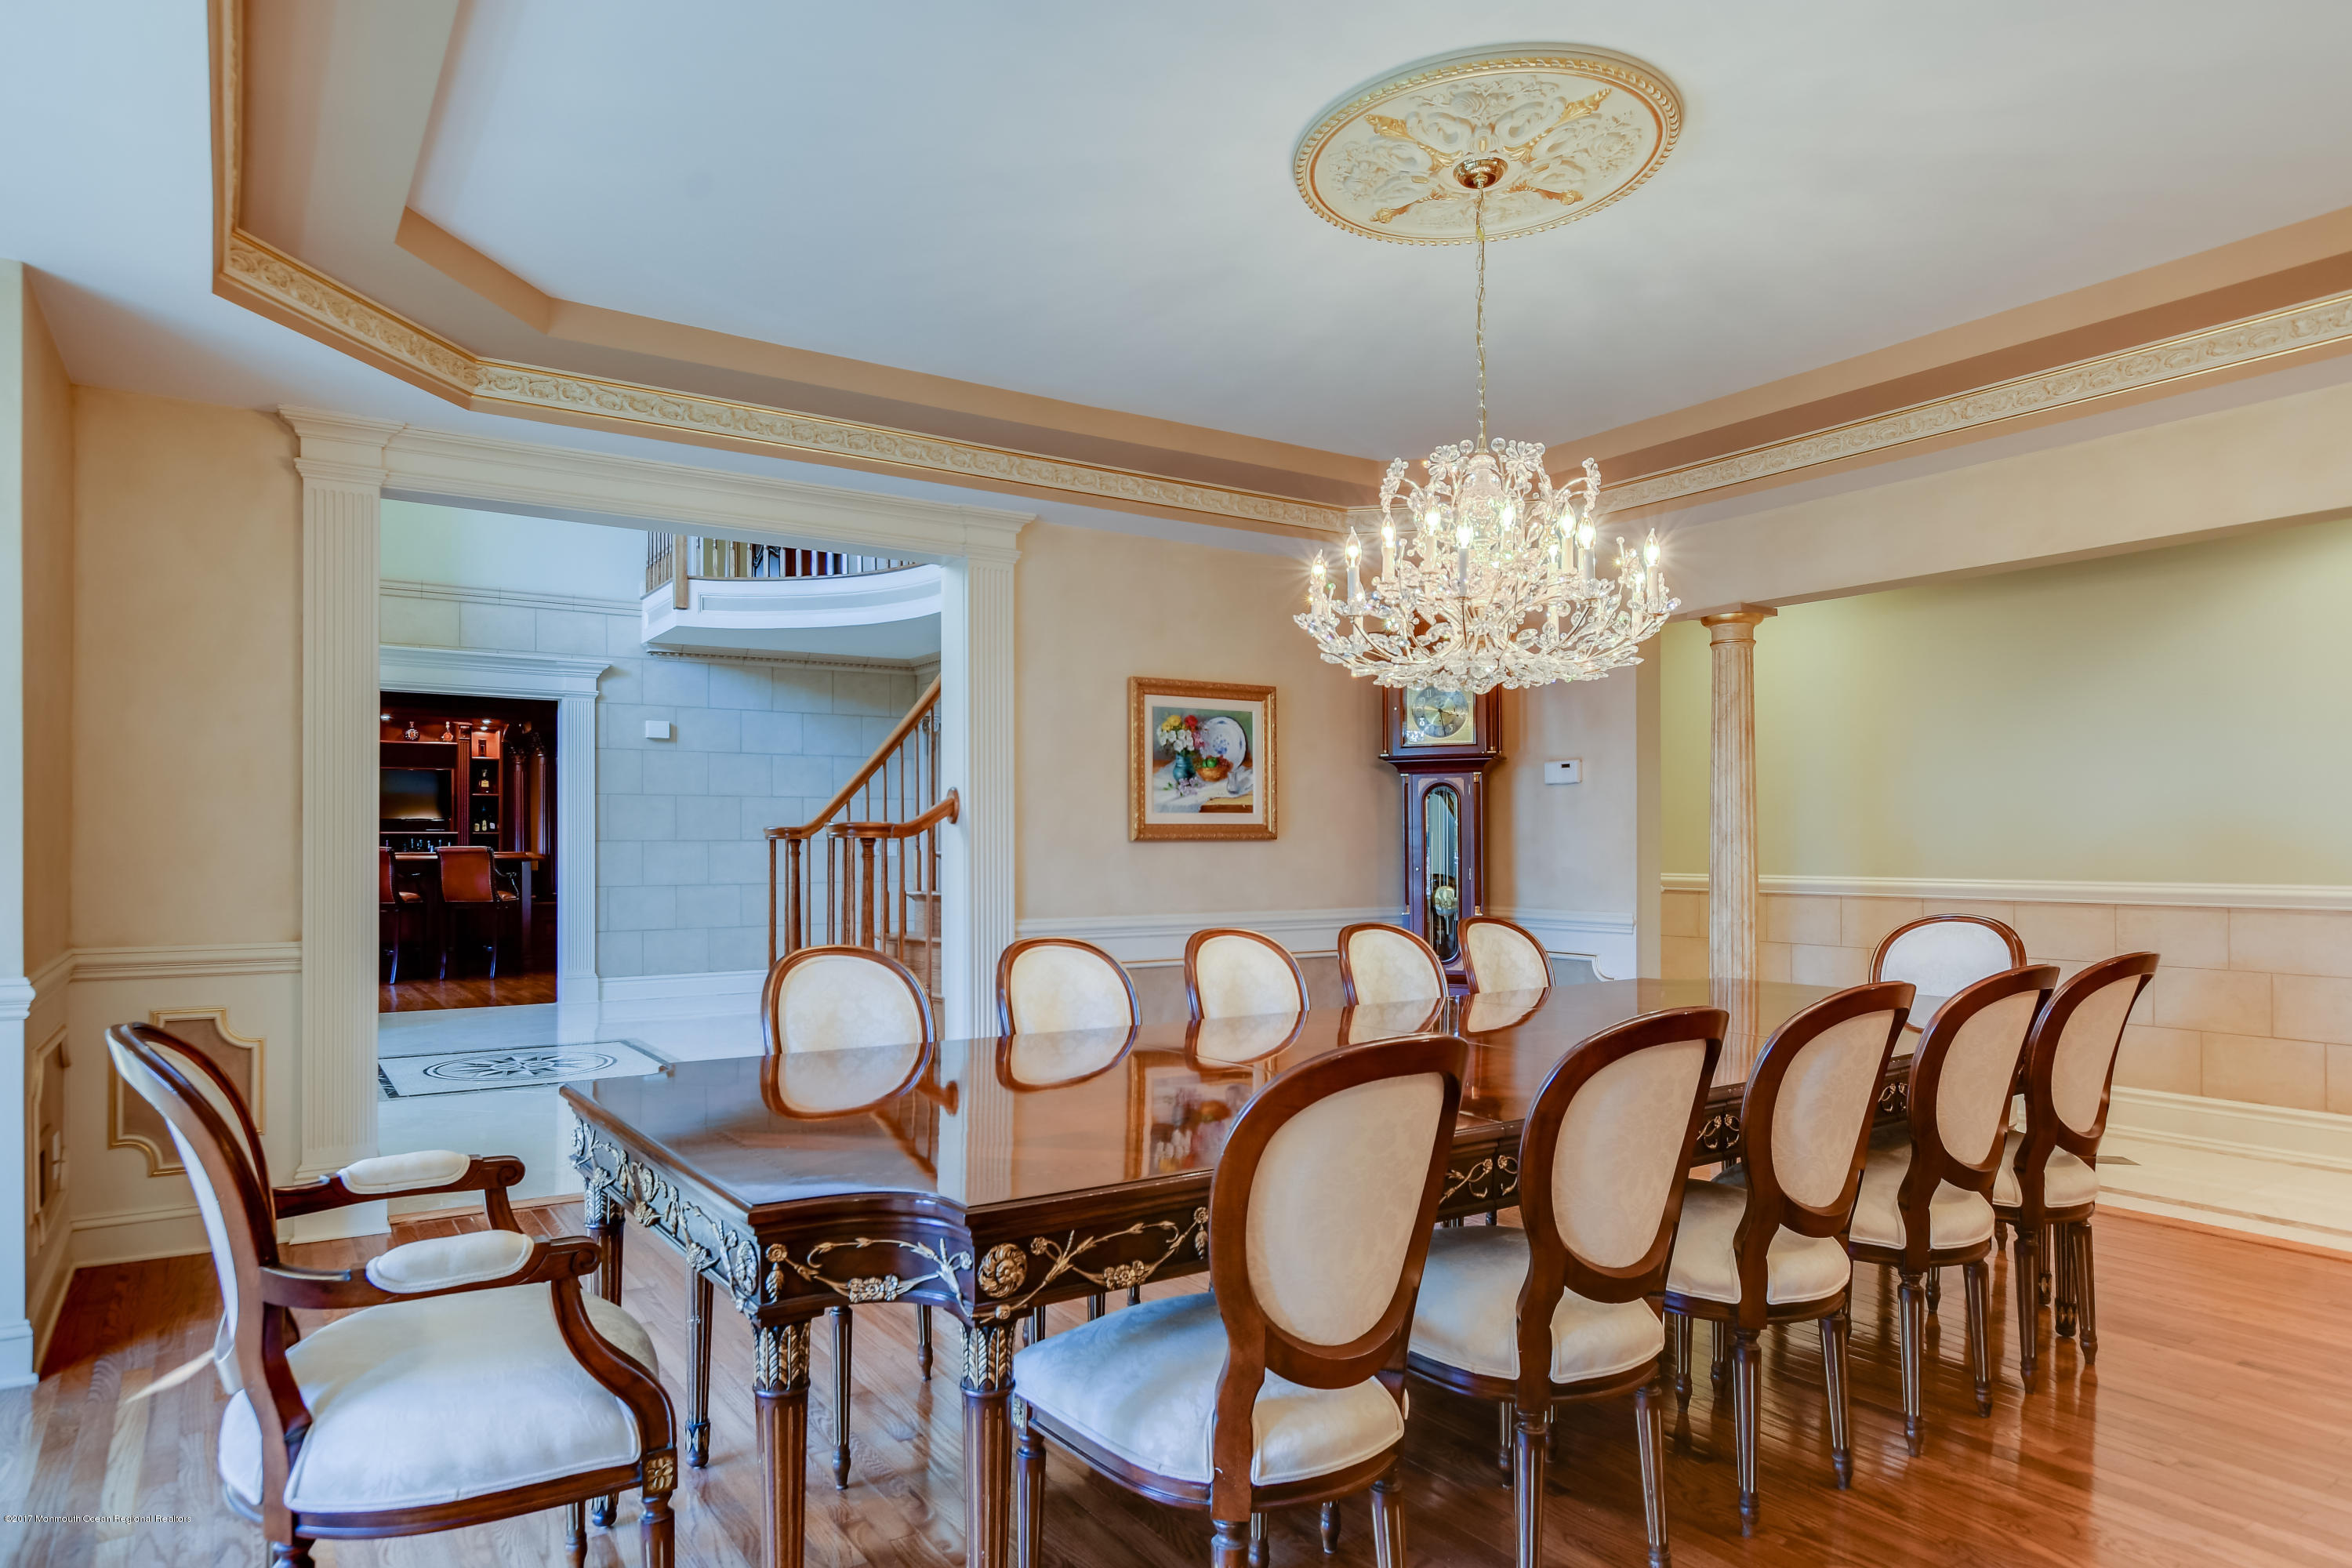 Banquet Sized Dining Room